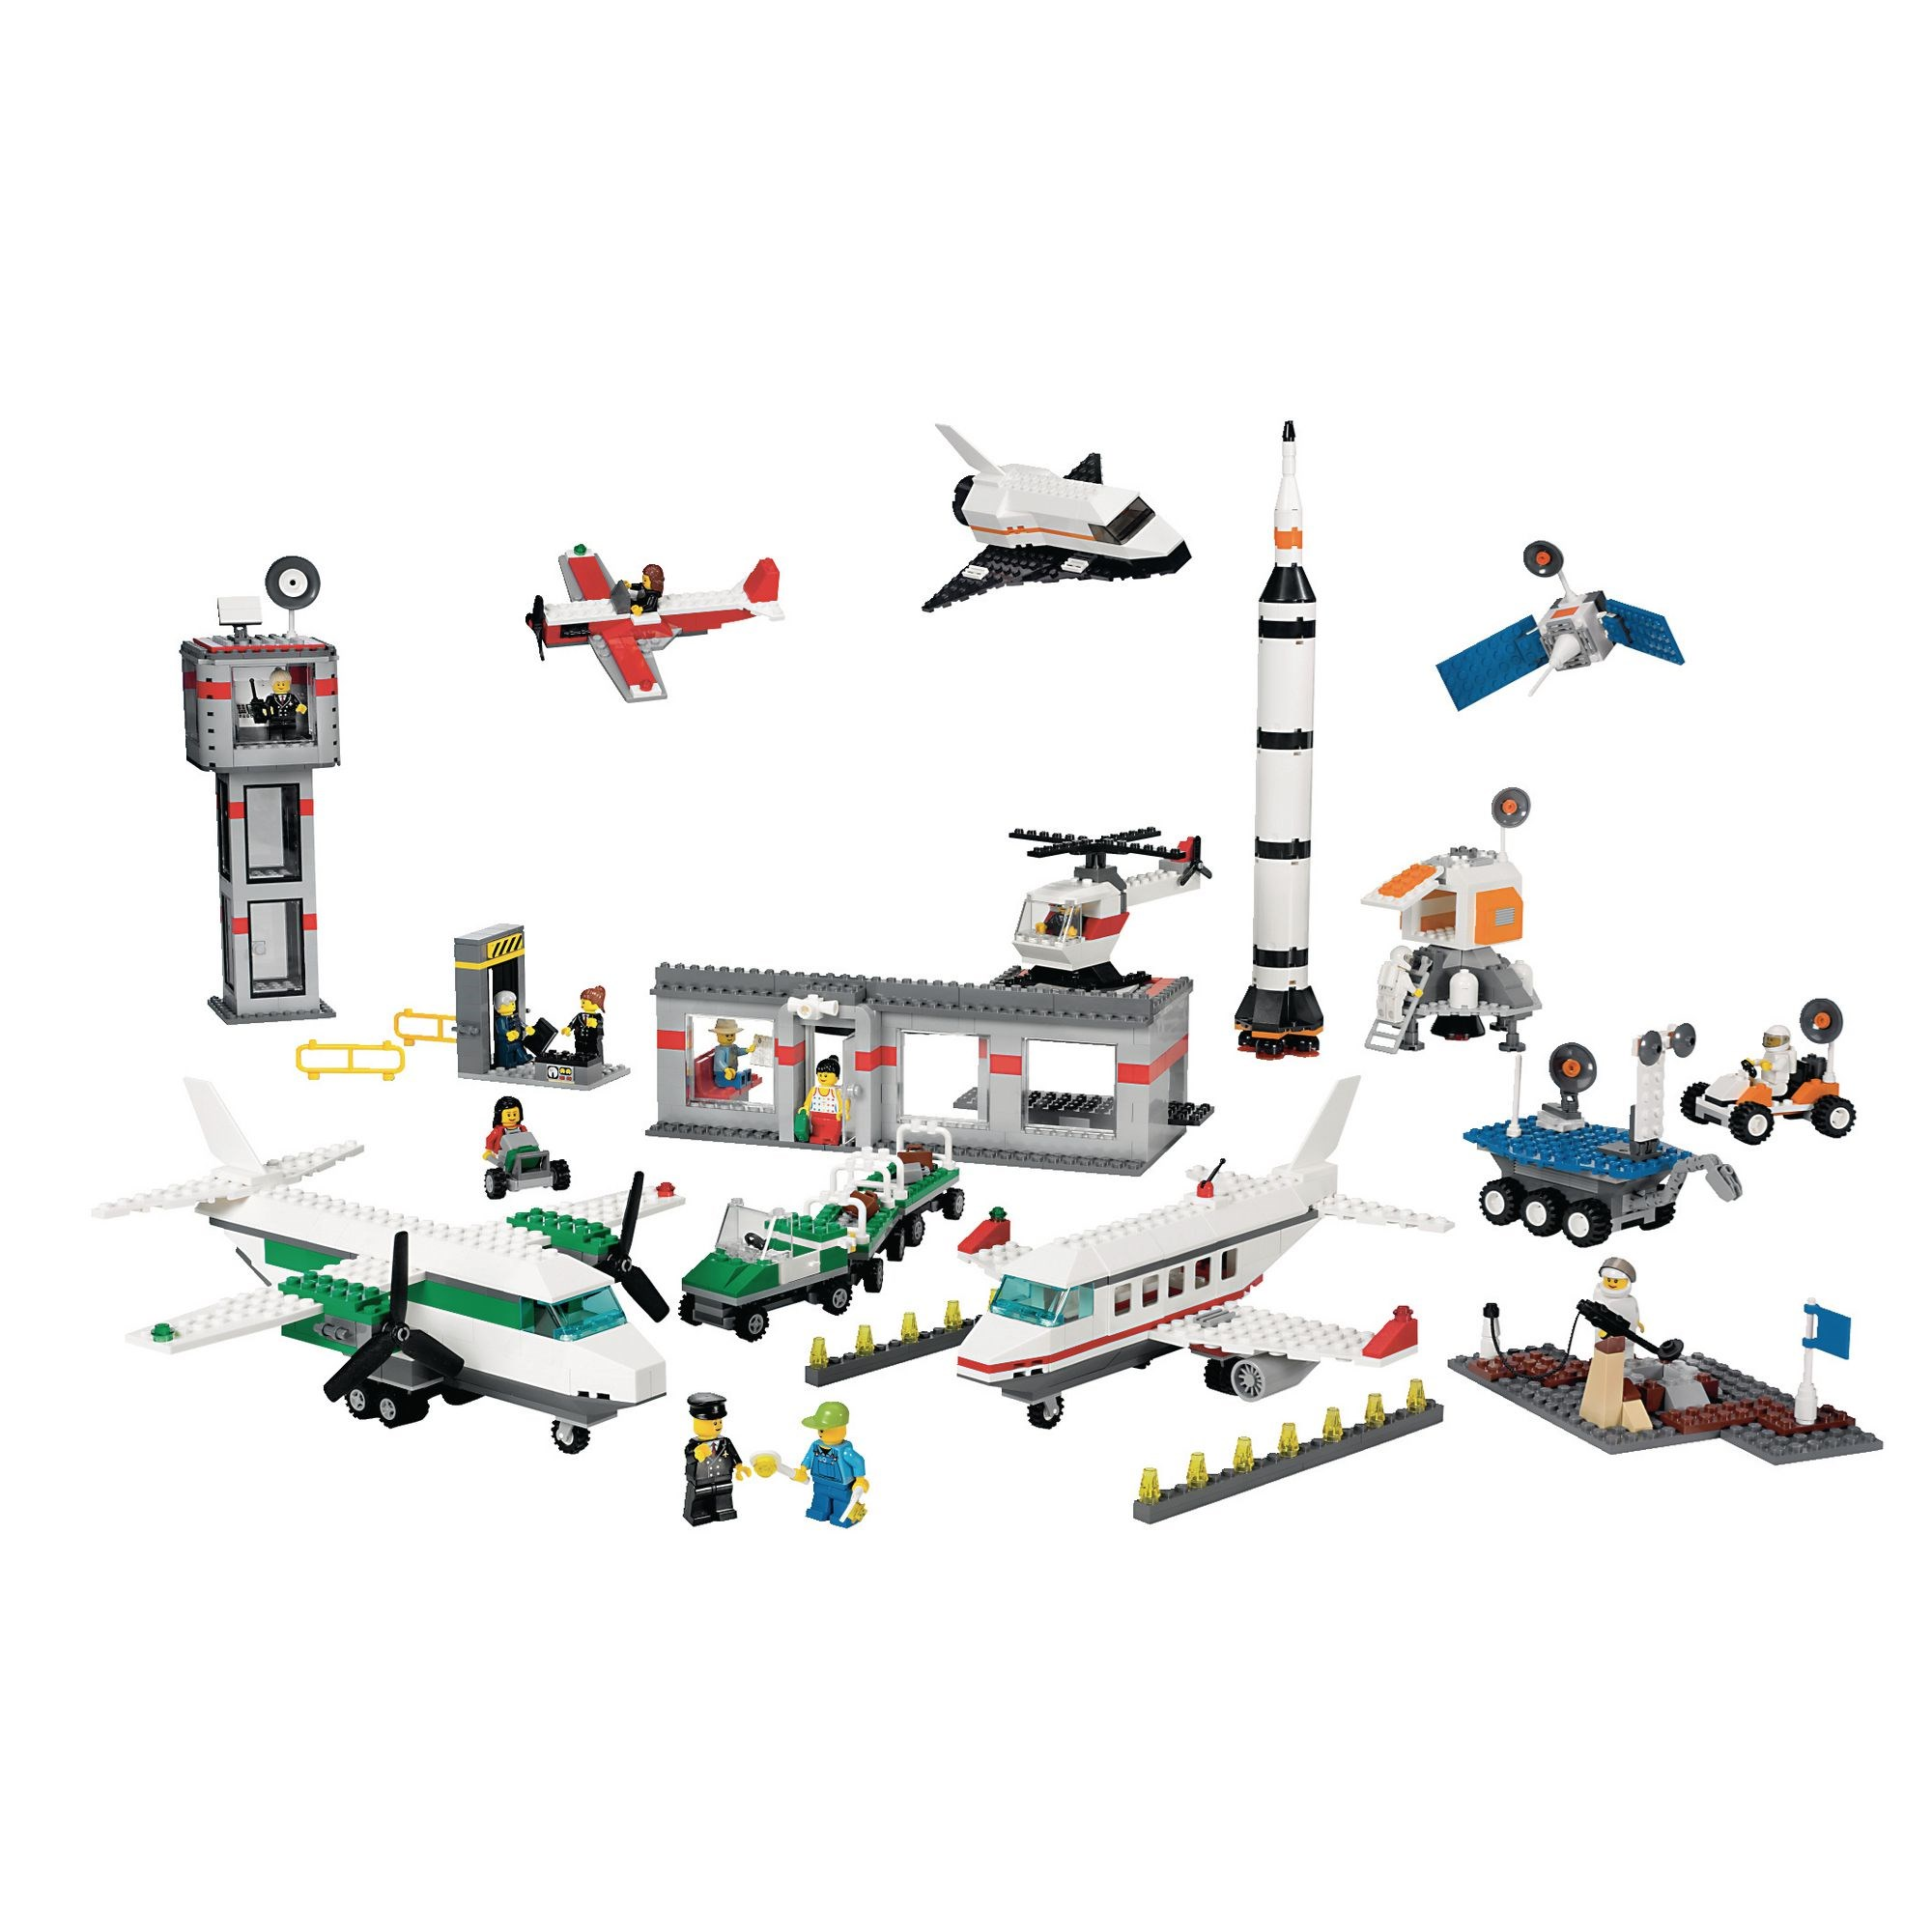 Lego Space and Airport Set